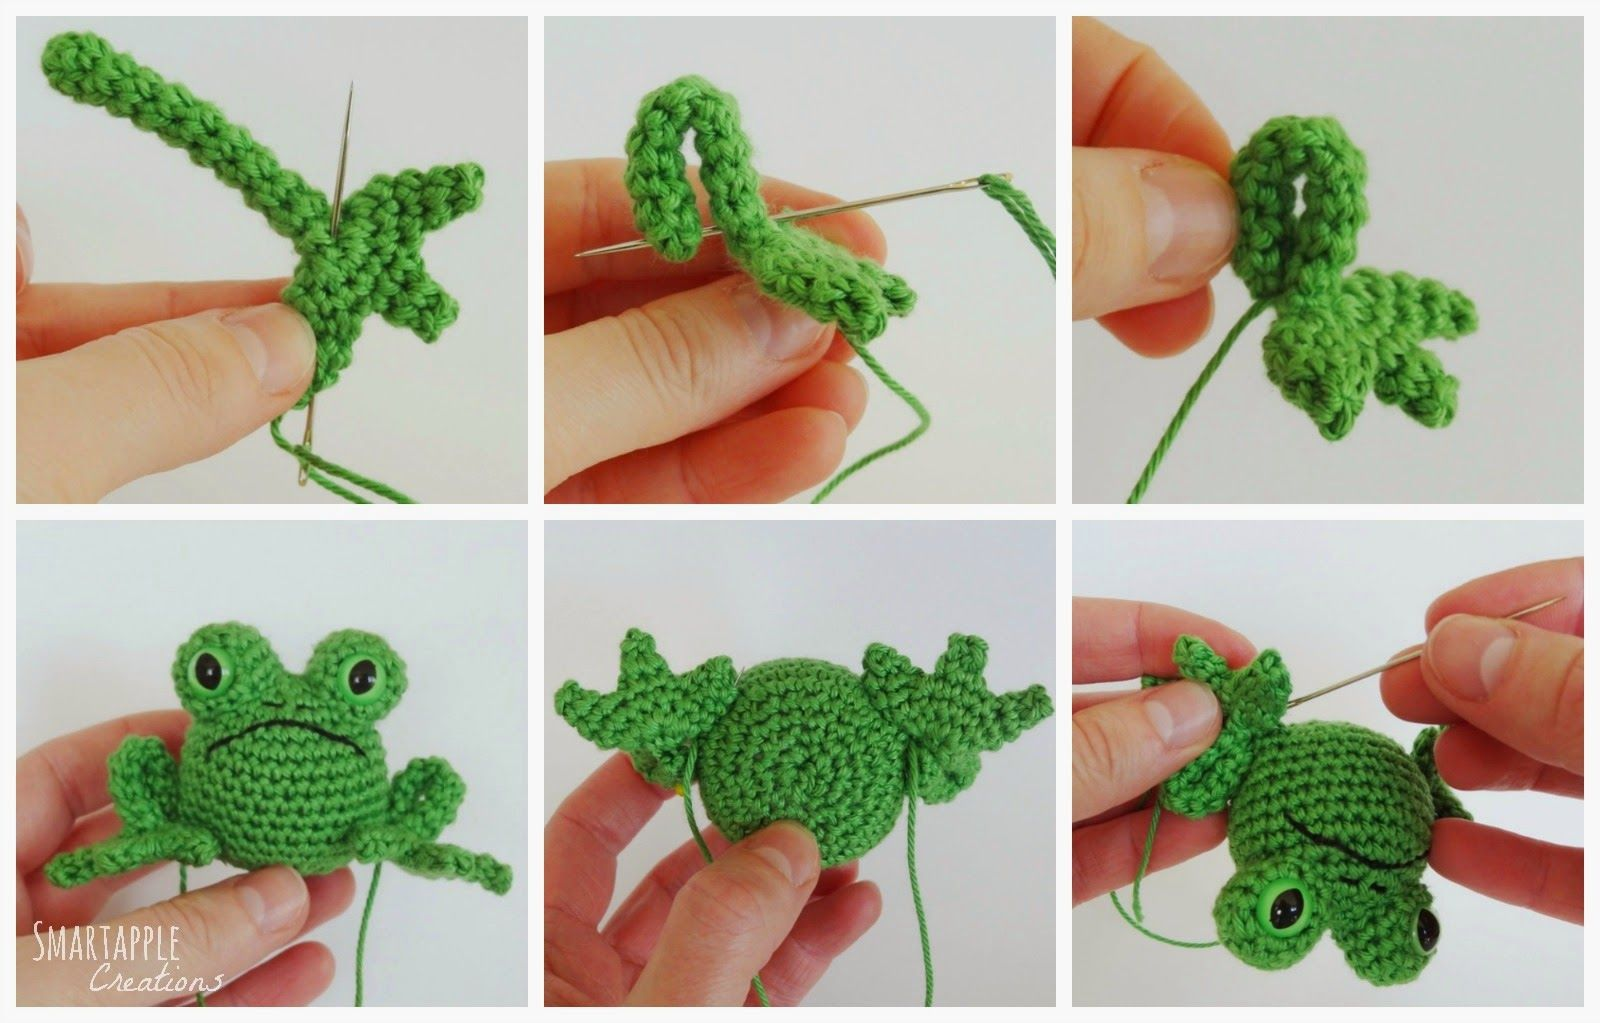 Httpsmartapplecreationsspot201404free pattern smartapple amigurumi and crochet creations free pattern fred the frog moss aww thanks so for sharing xox bankloansurffo Gallery